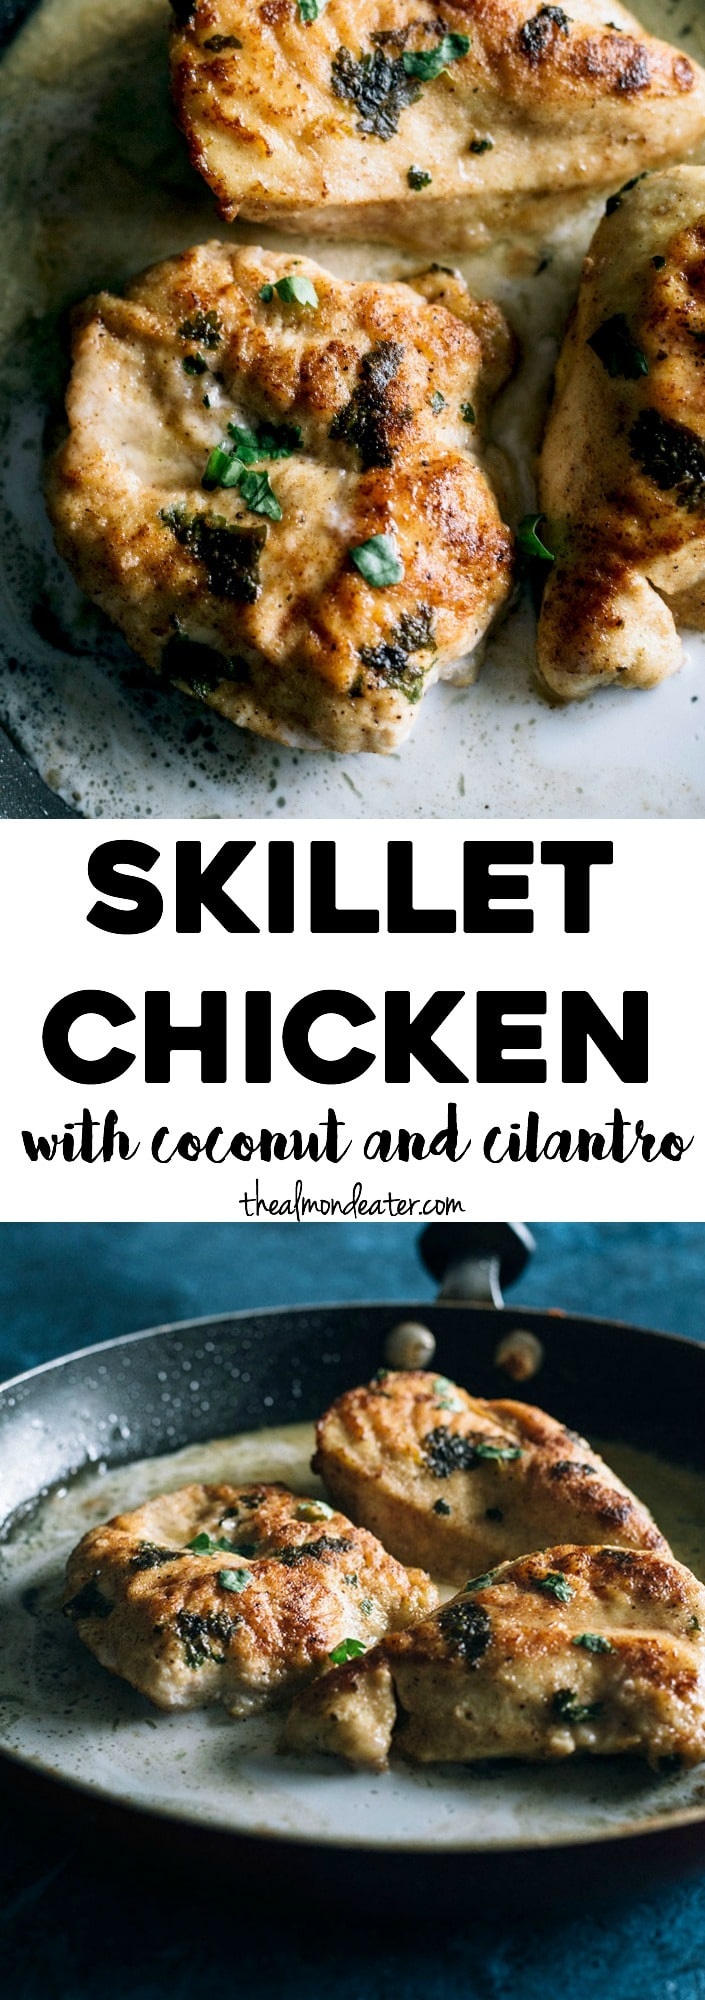 ONE SKILLET Chicken marinated in coconut milk and cilantro, ready in just 30 minutes! | thealmondeater.com